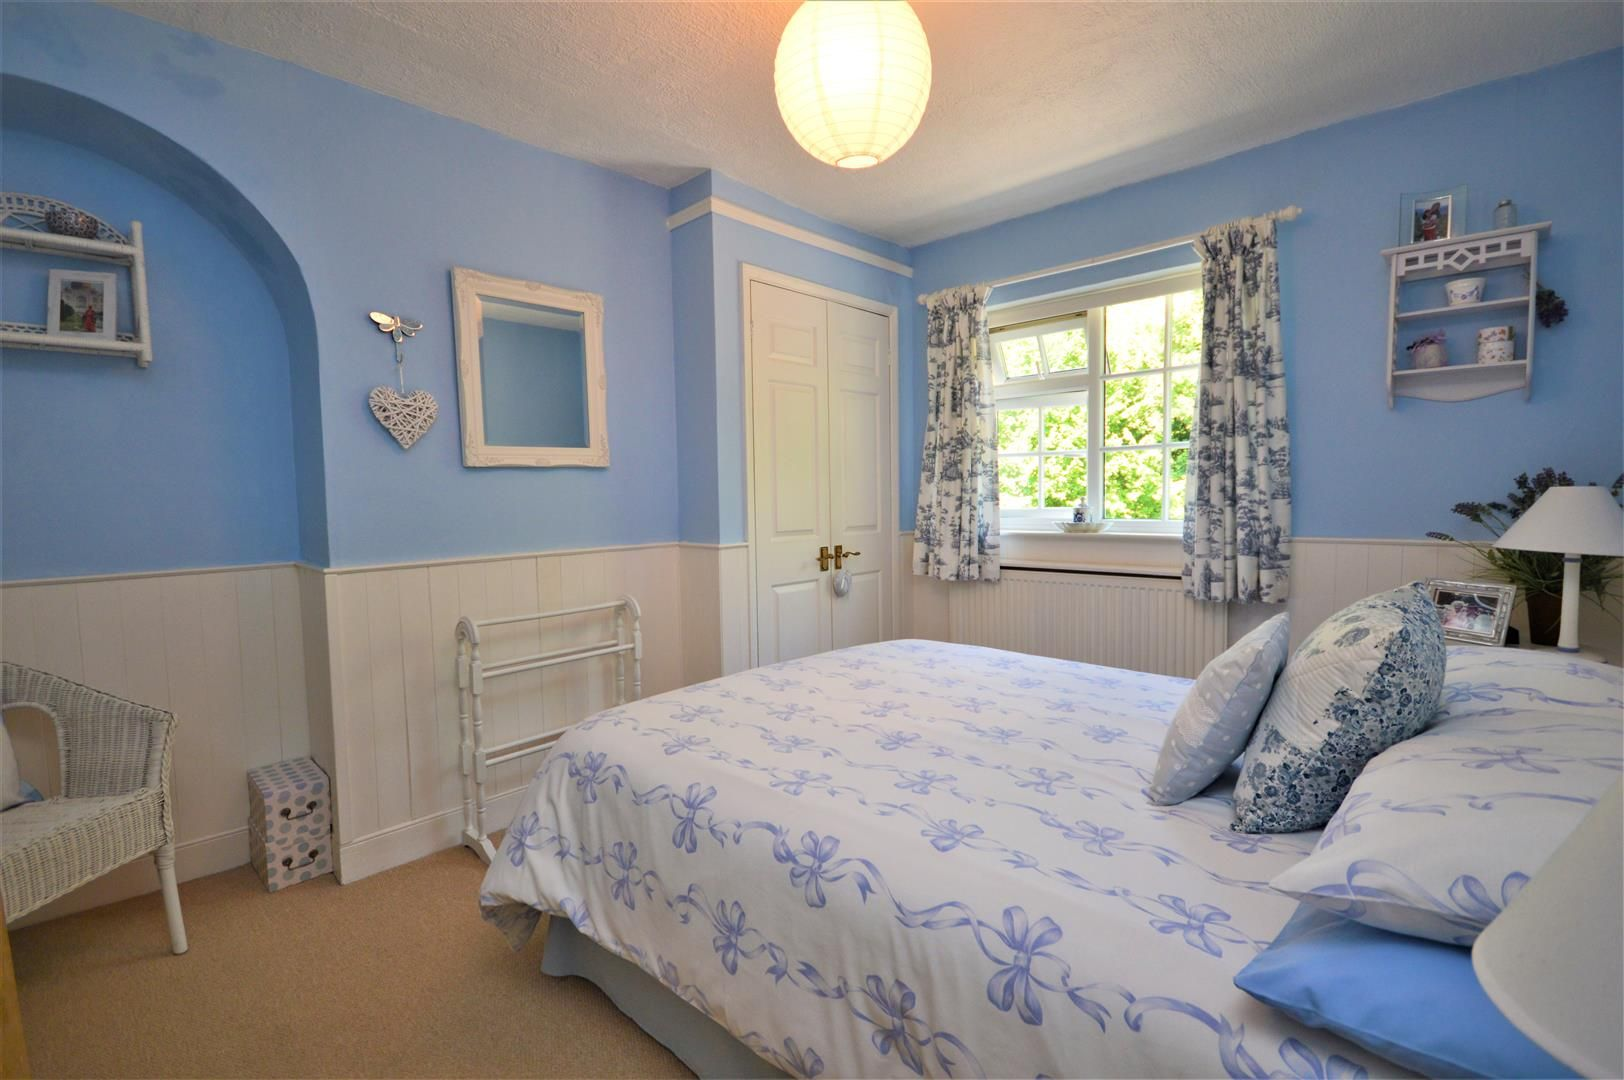 3 bed semi-detached for sale in Madley 11